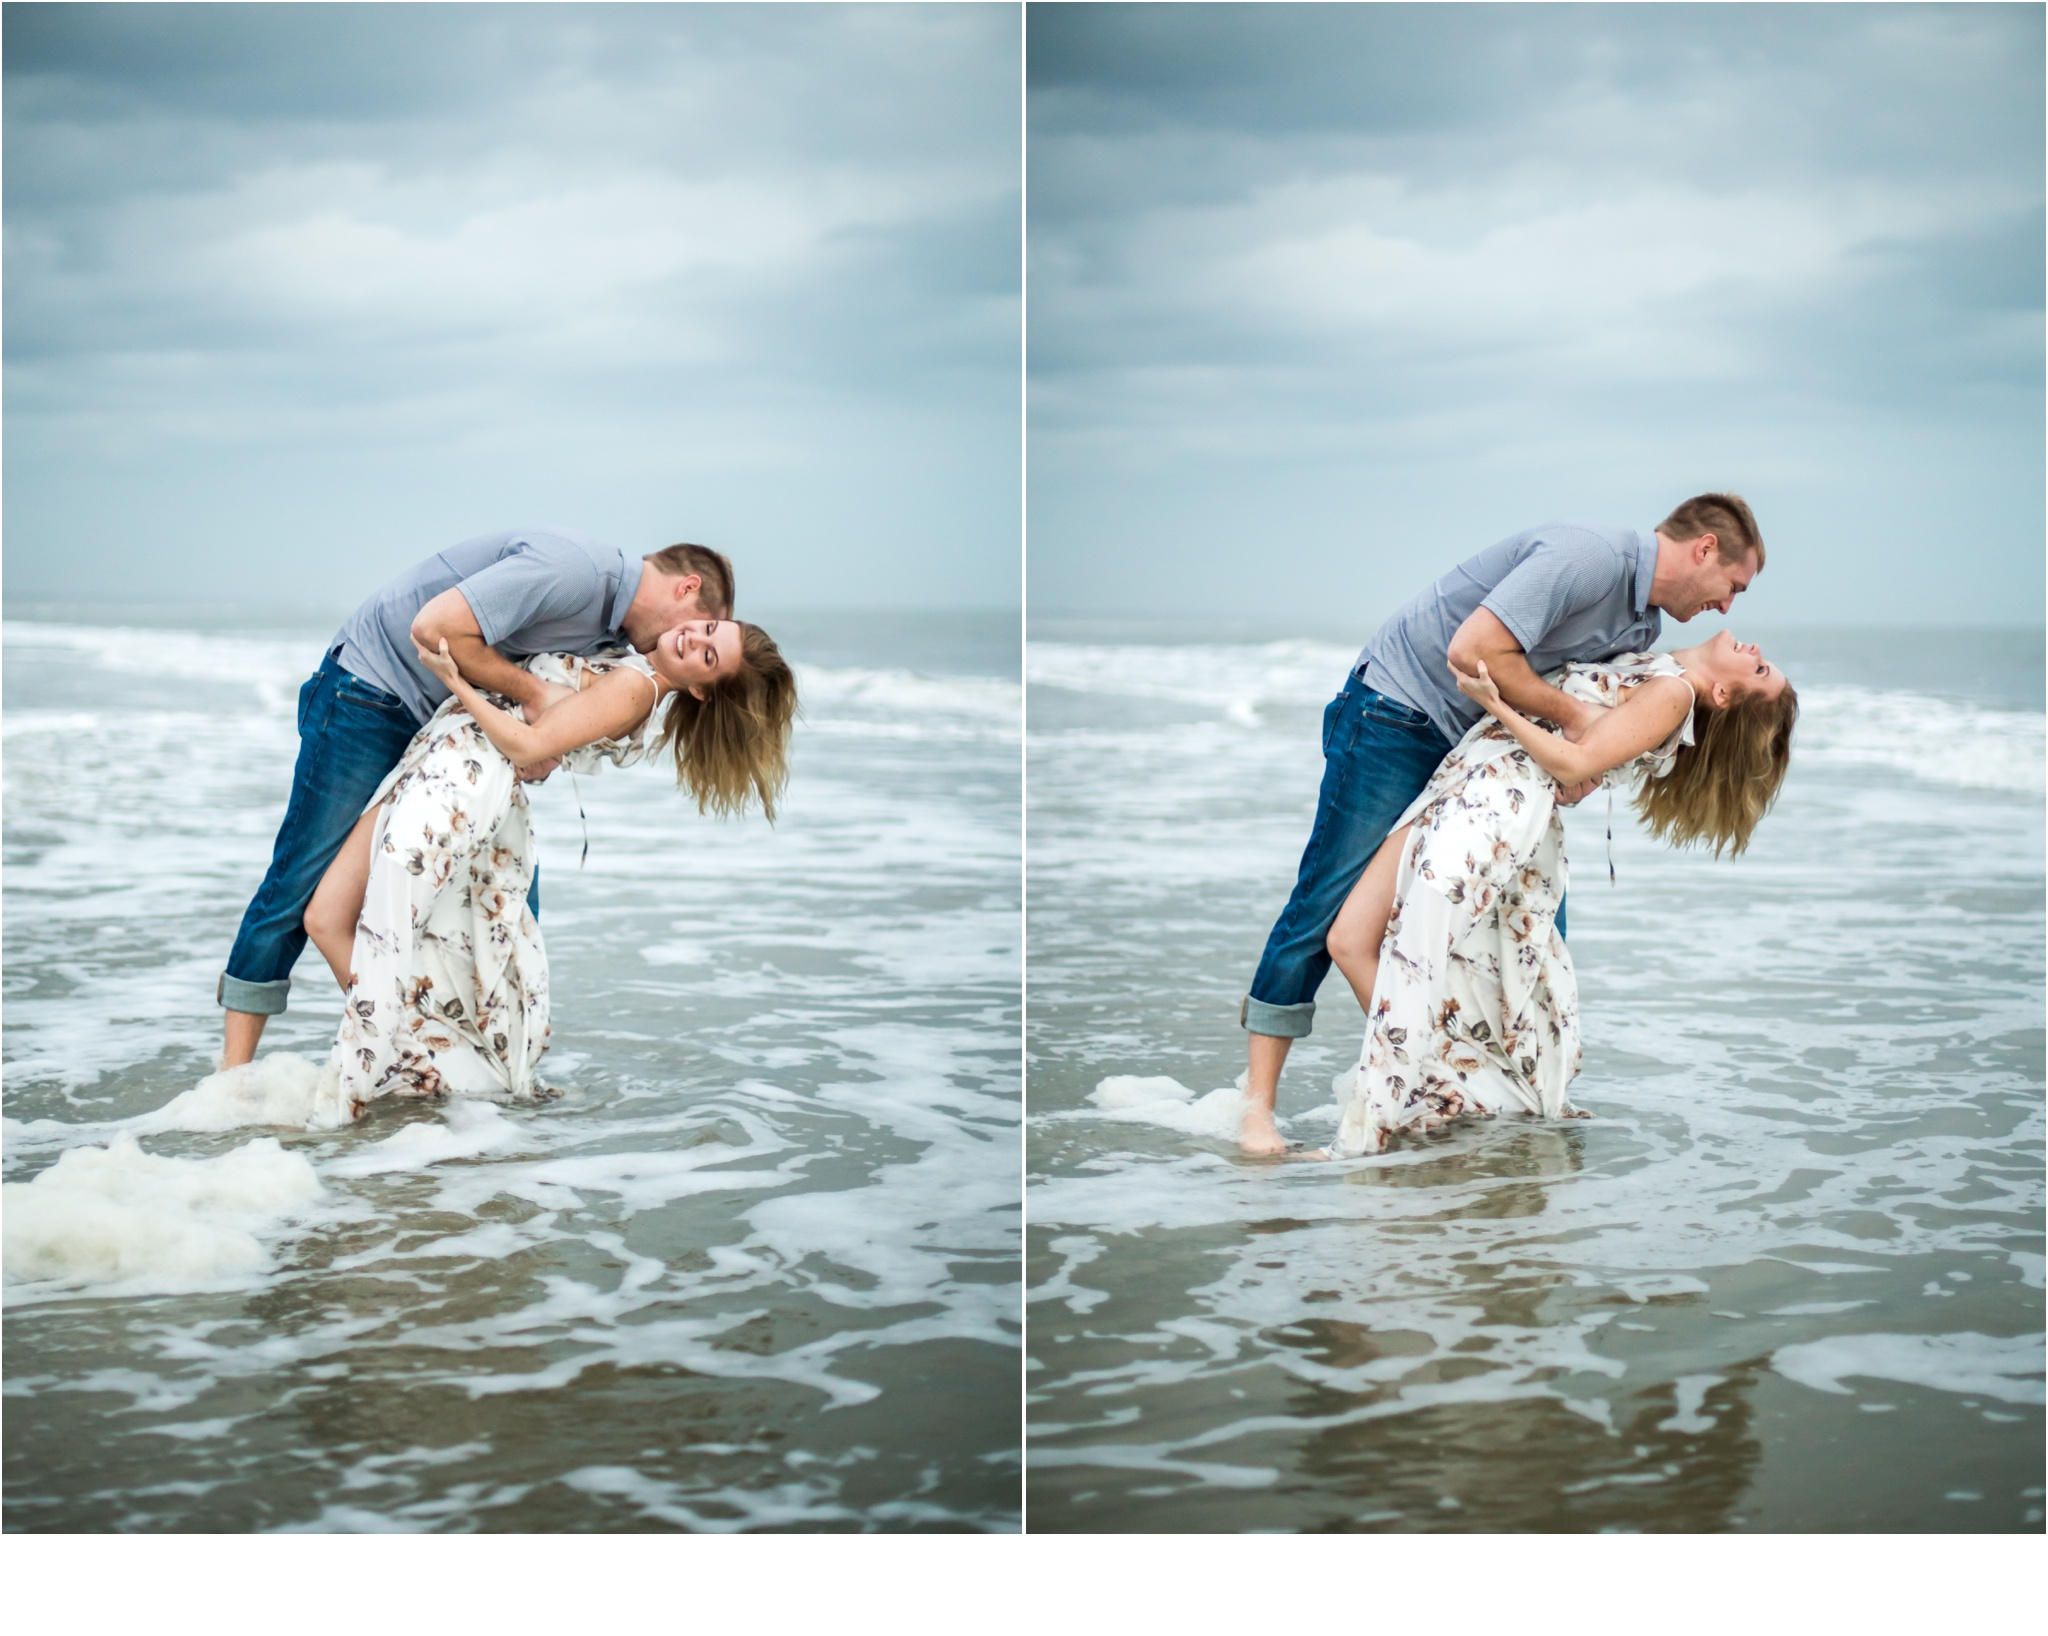 Rainey_Gregg_Photography_St._Simons_Island_Georgia_California_Wedding_Portrait_Photography_0625.jpg